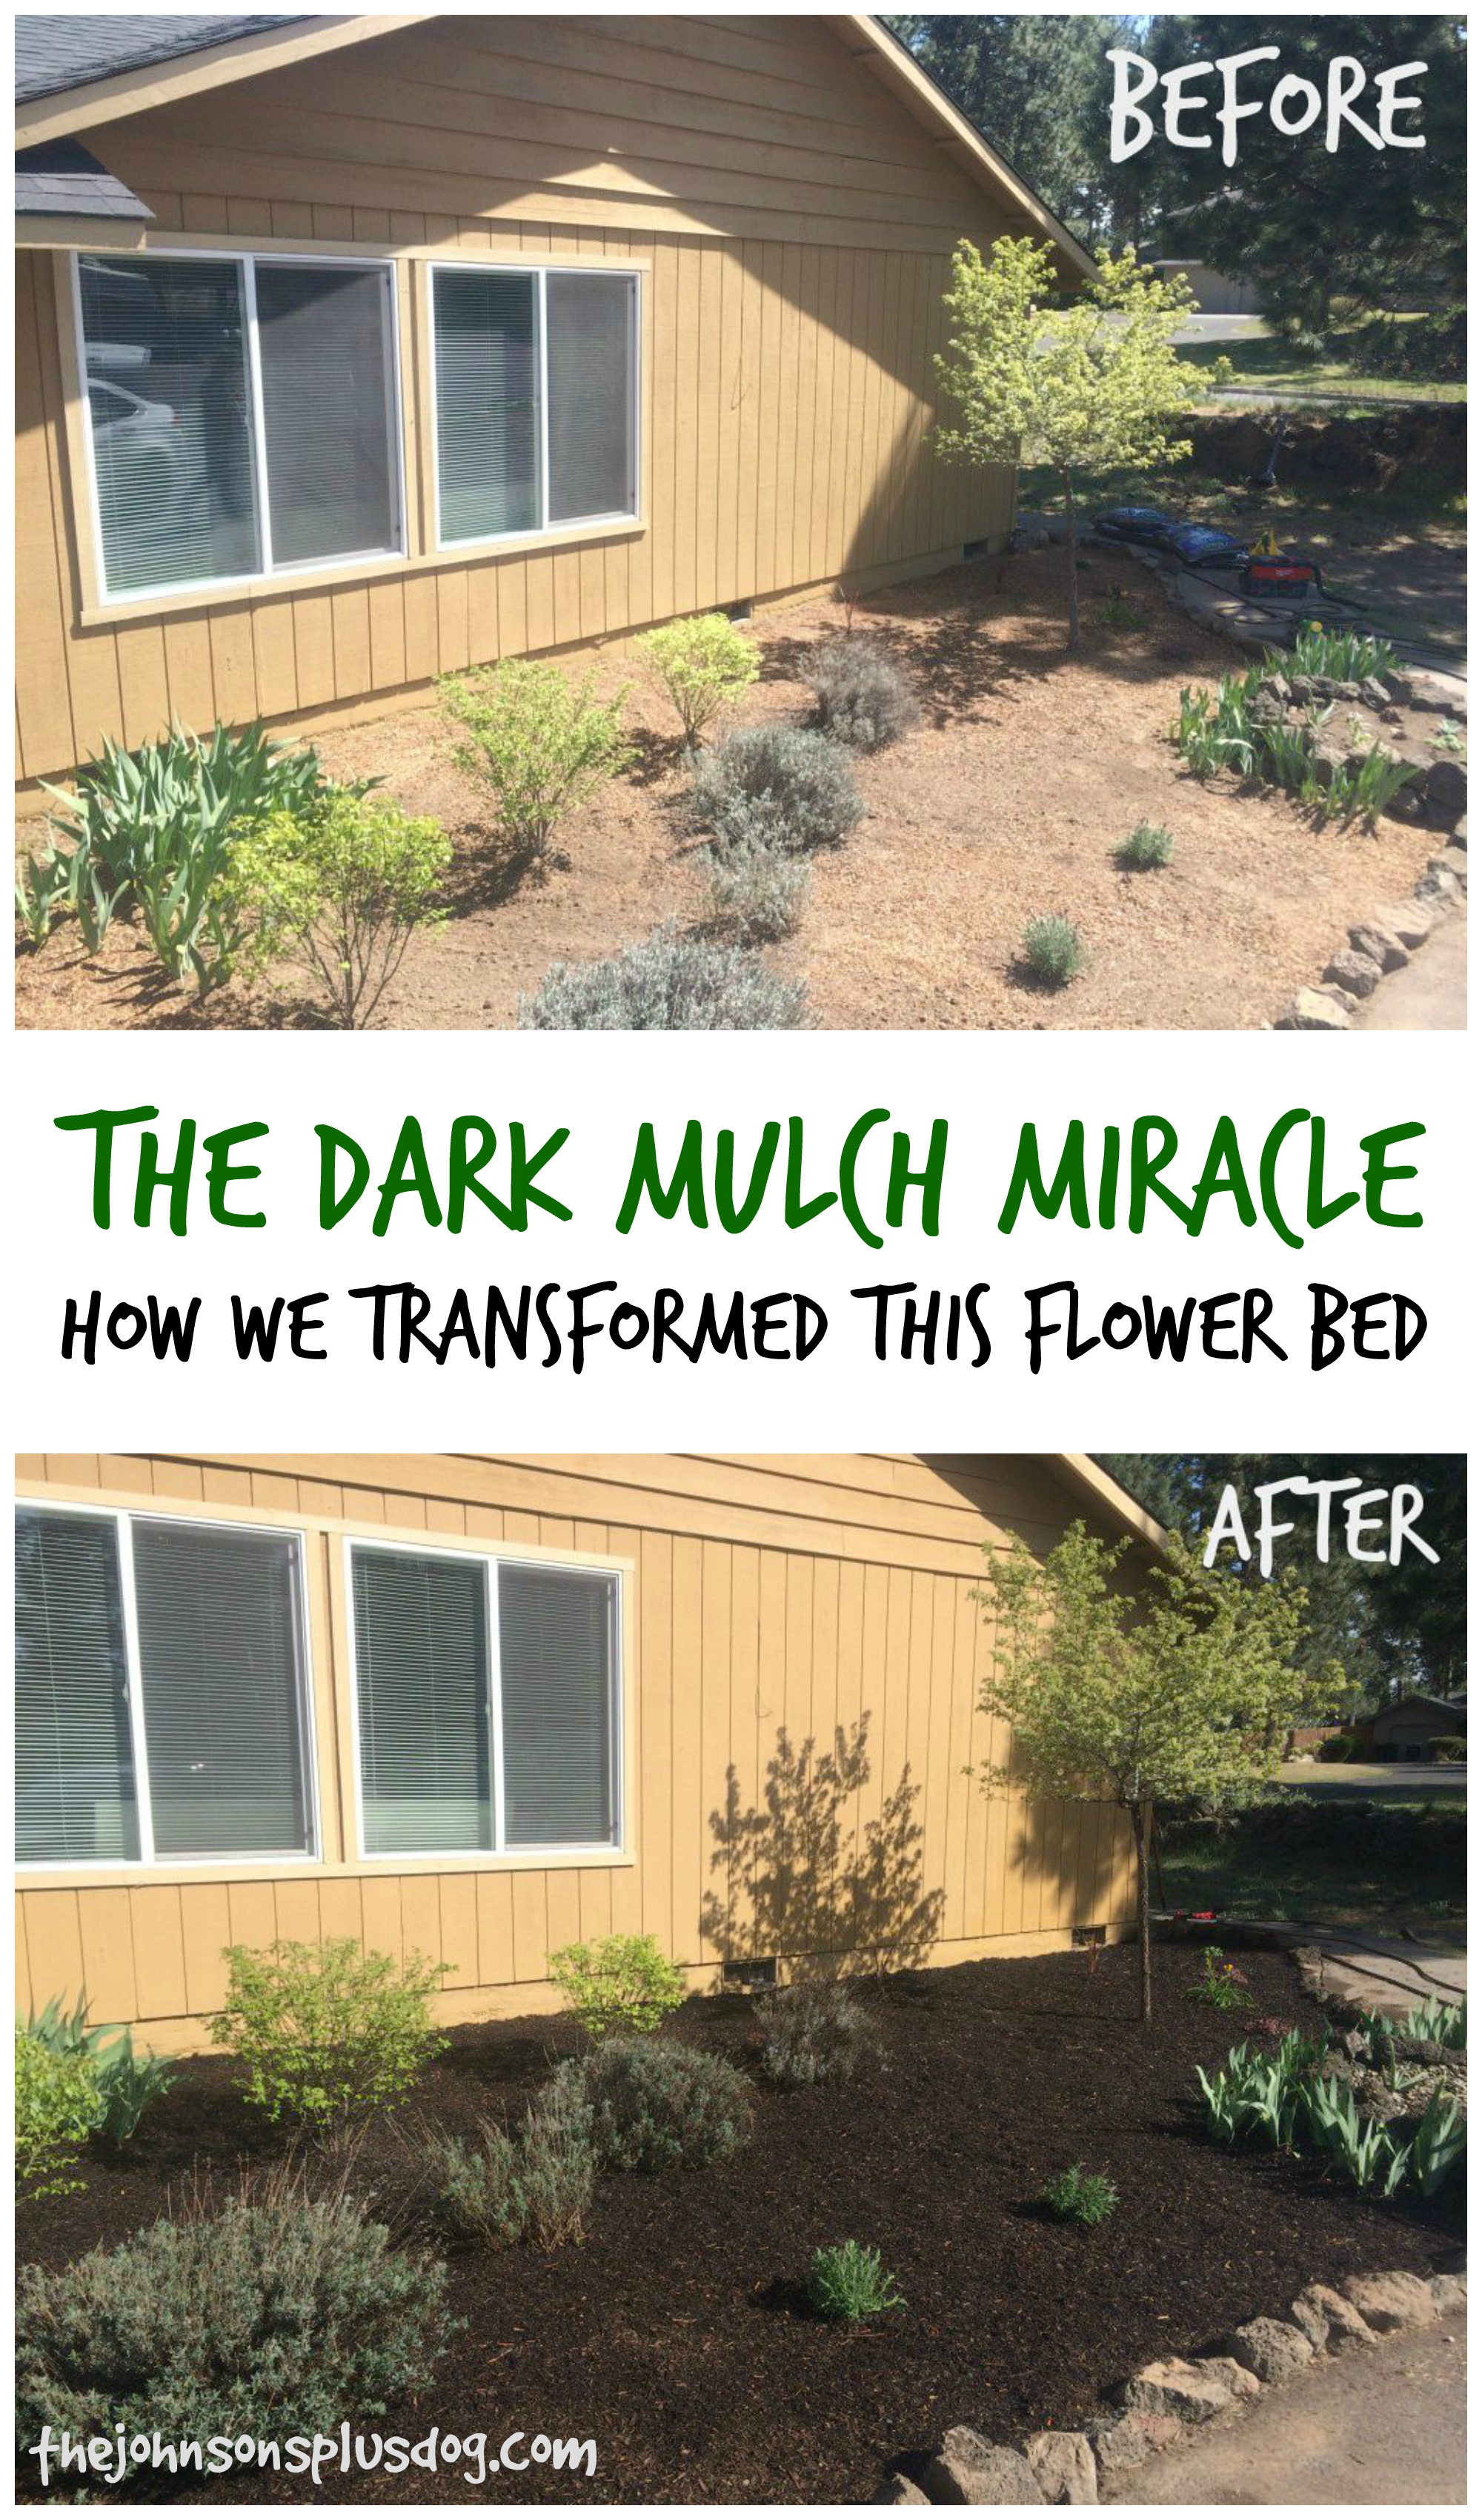 "Before and After Photos of Flower Bed Transformation. Text overlay in the middle says "" The dark mulch miracle : how we transformed this flower bed """